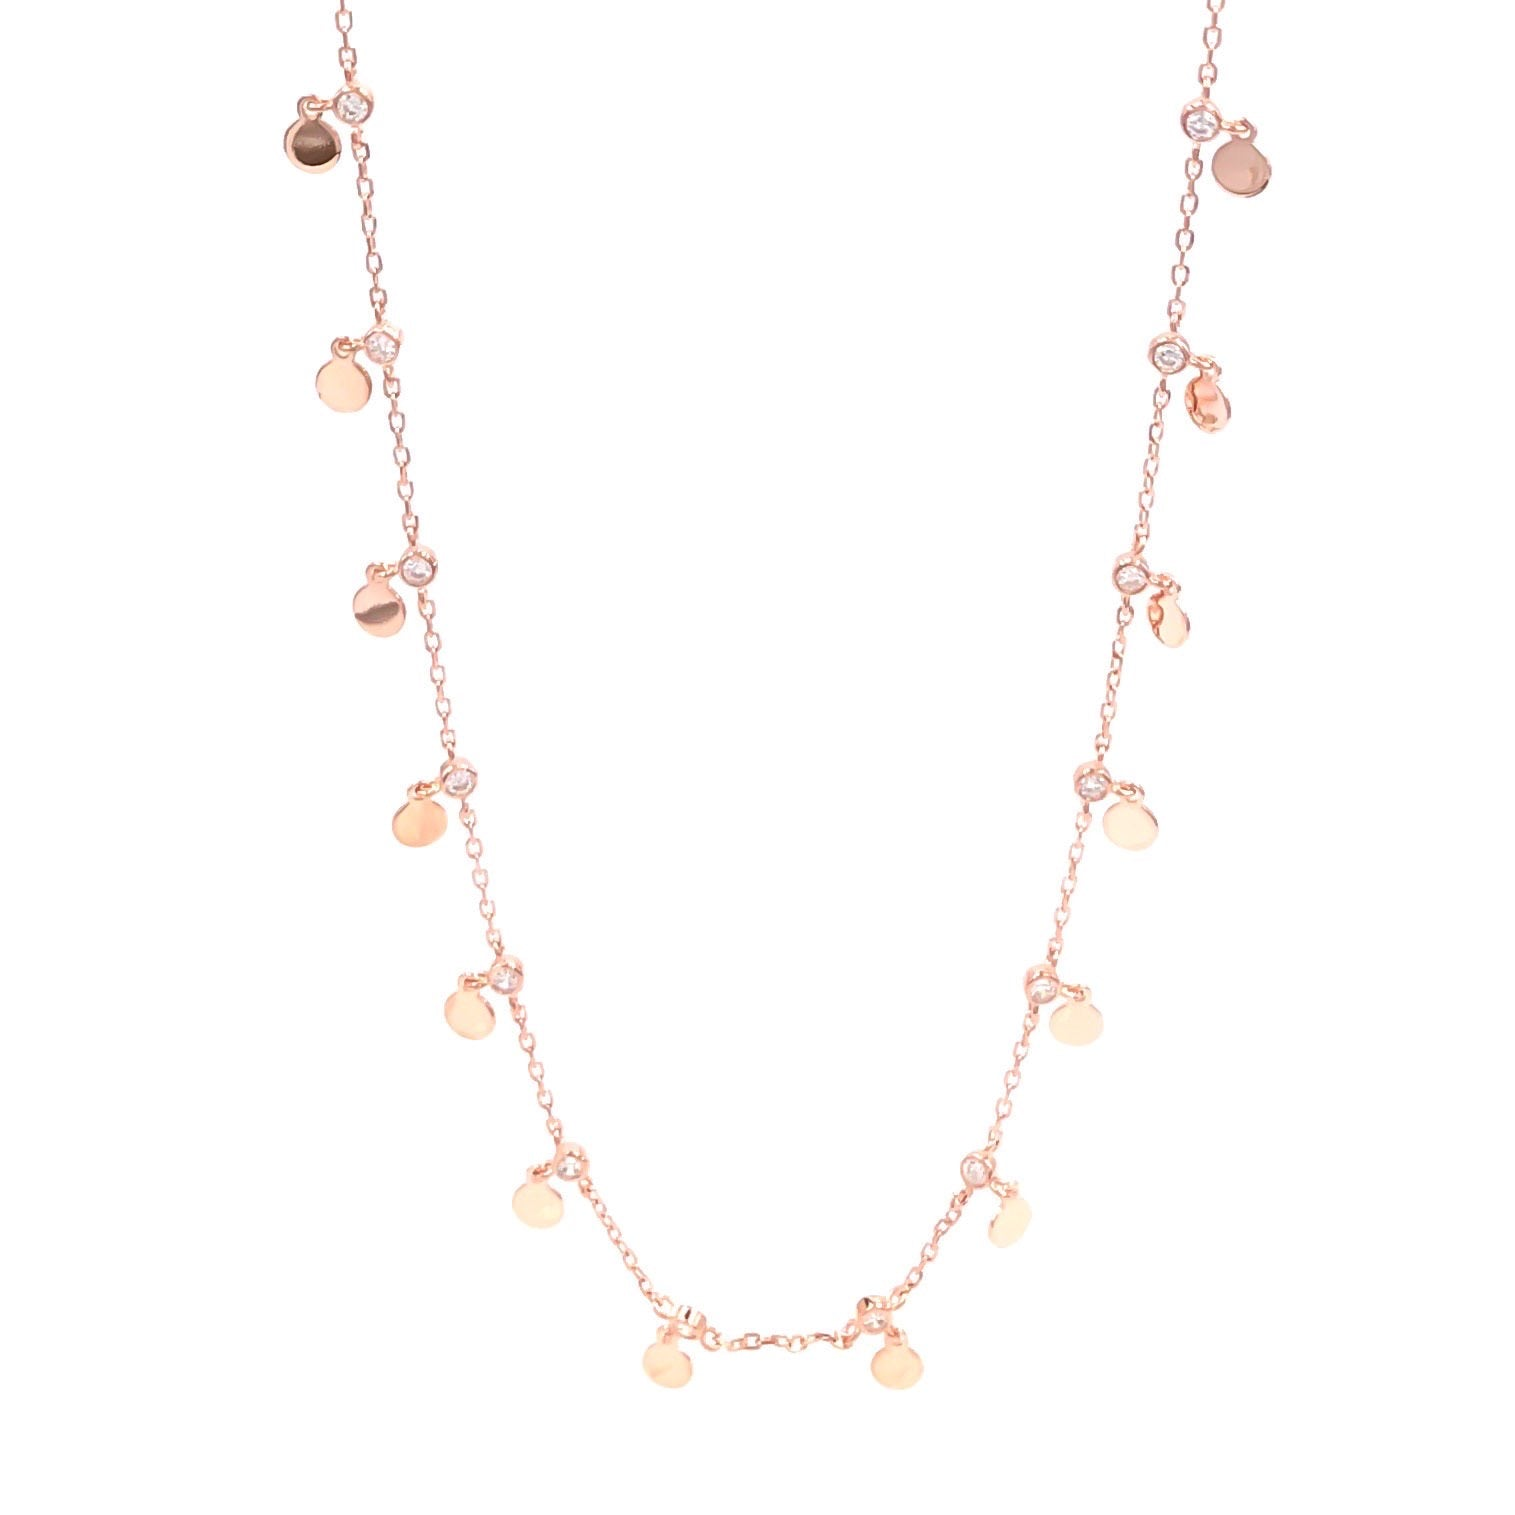 Gemstone Sequins Long Chain Necklace